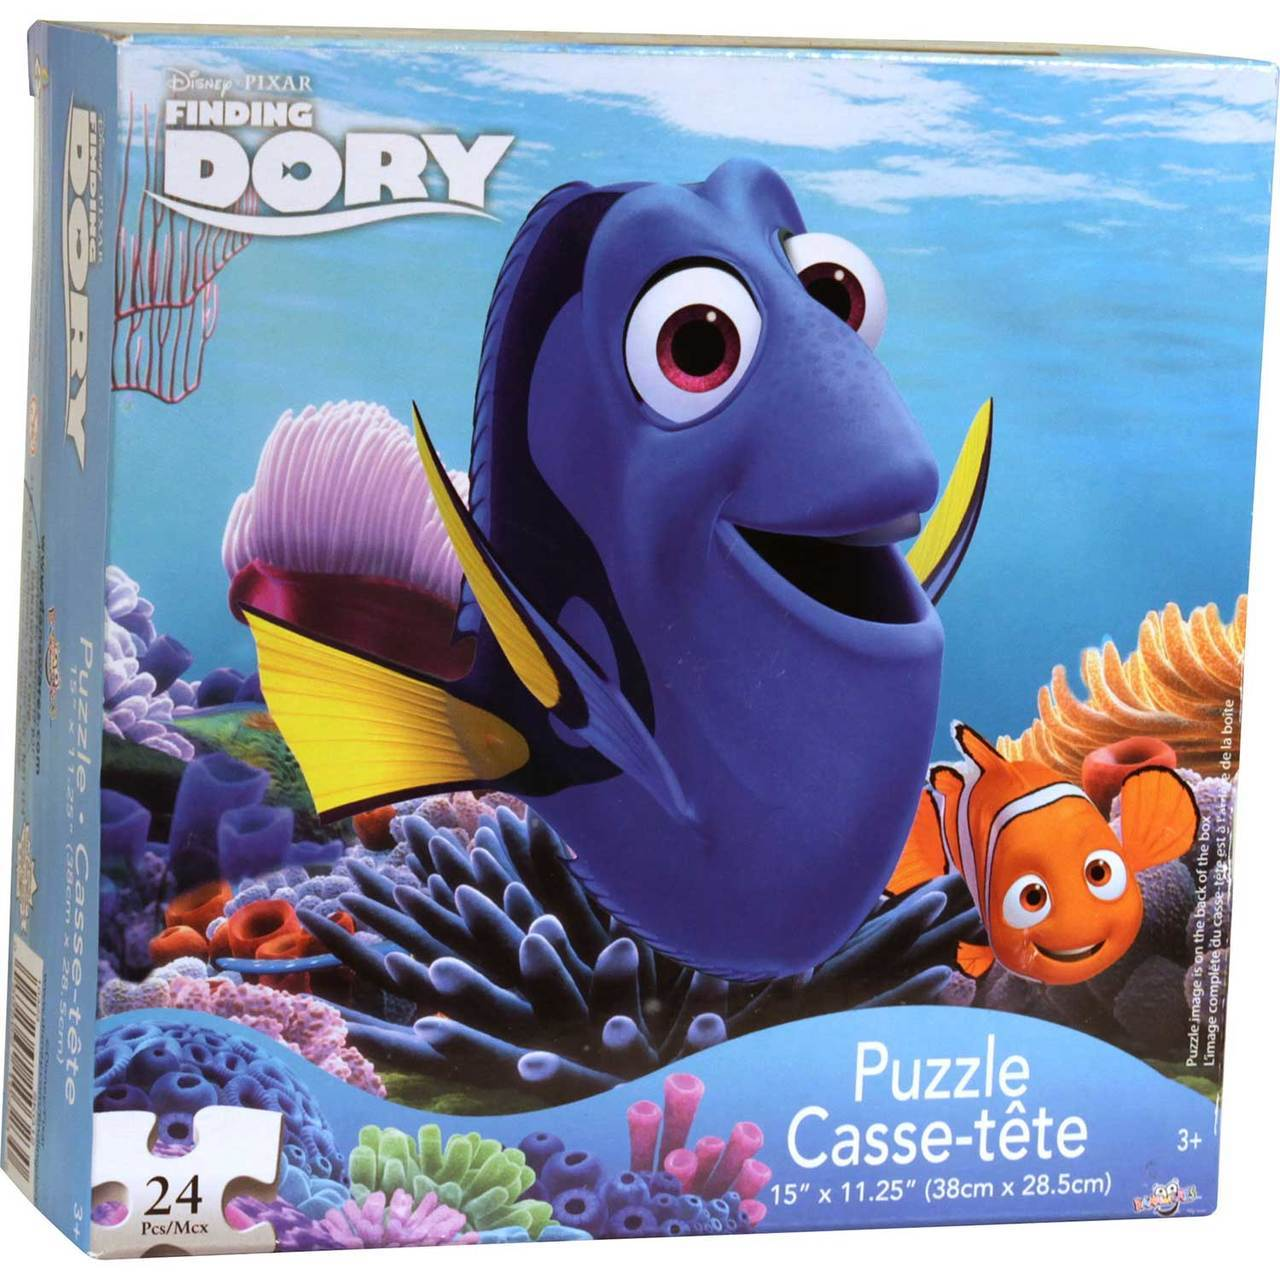 Finding Dory 24 Piece Puzzle